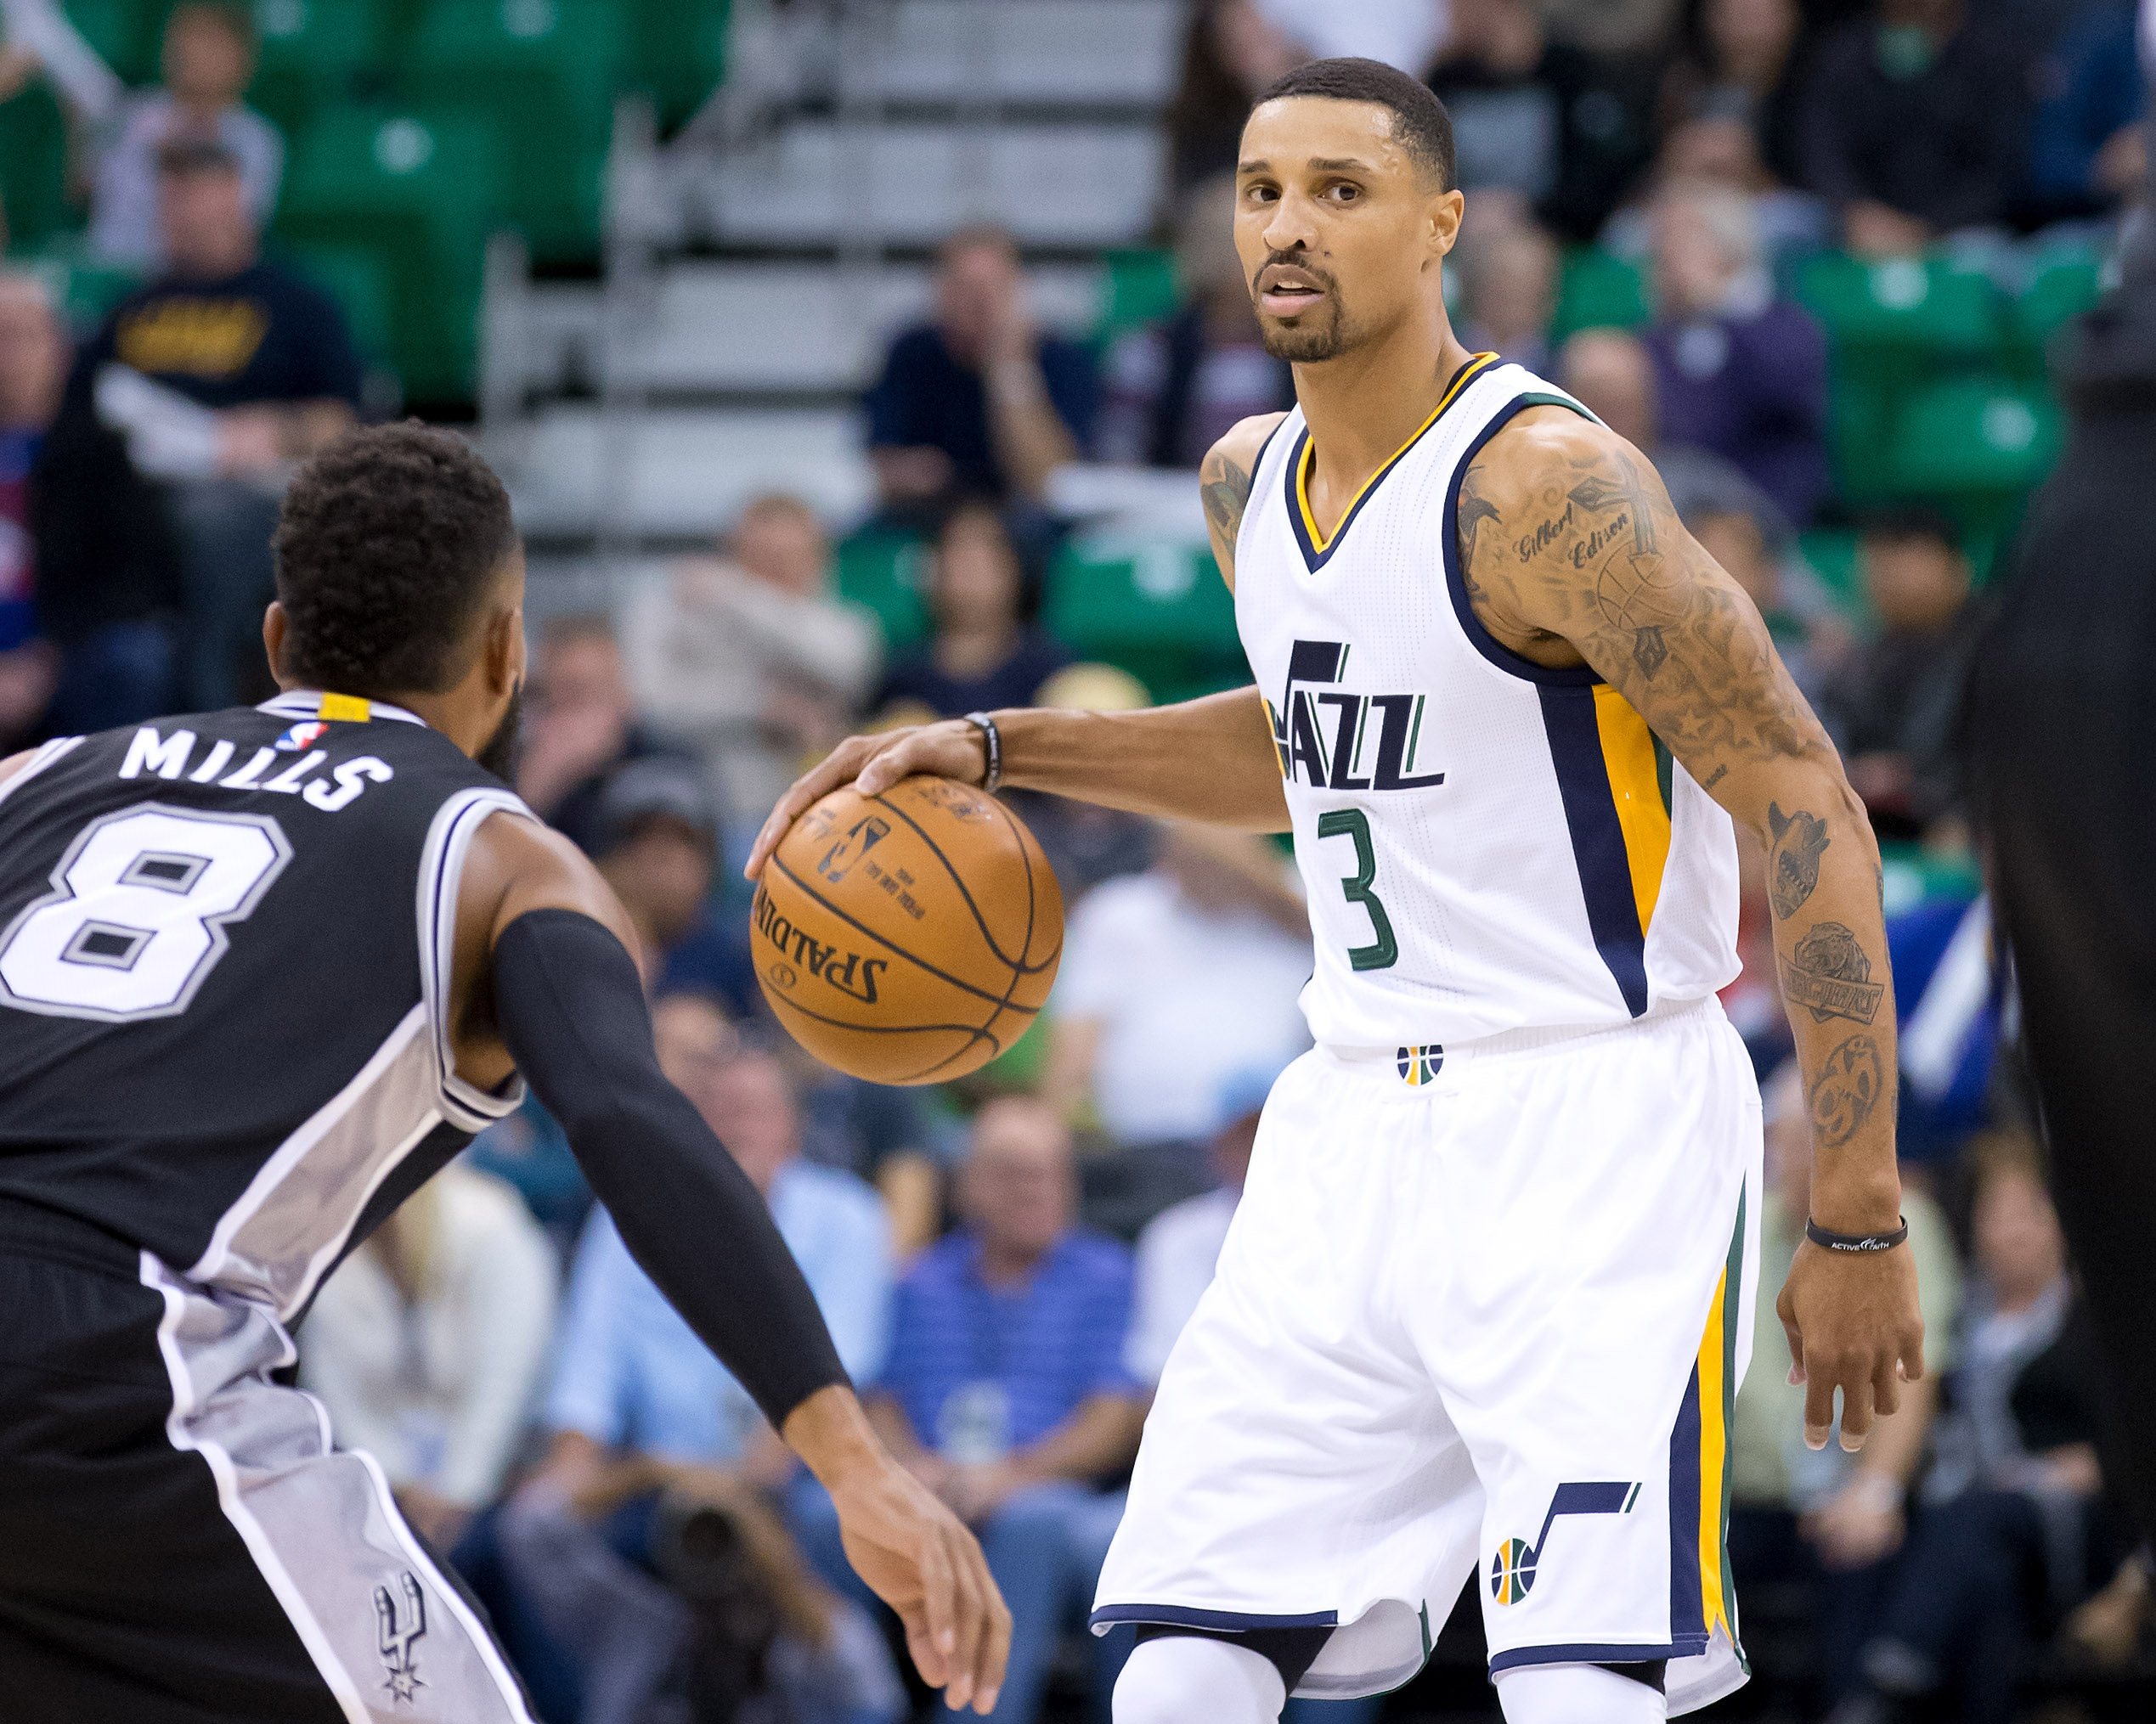 9654042-nba-san-antonio-spurs-at-utah-jazz